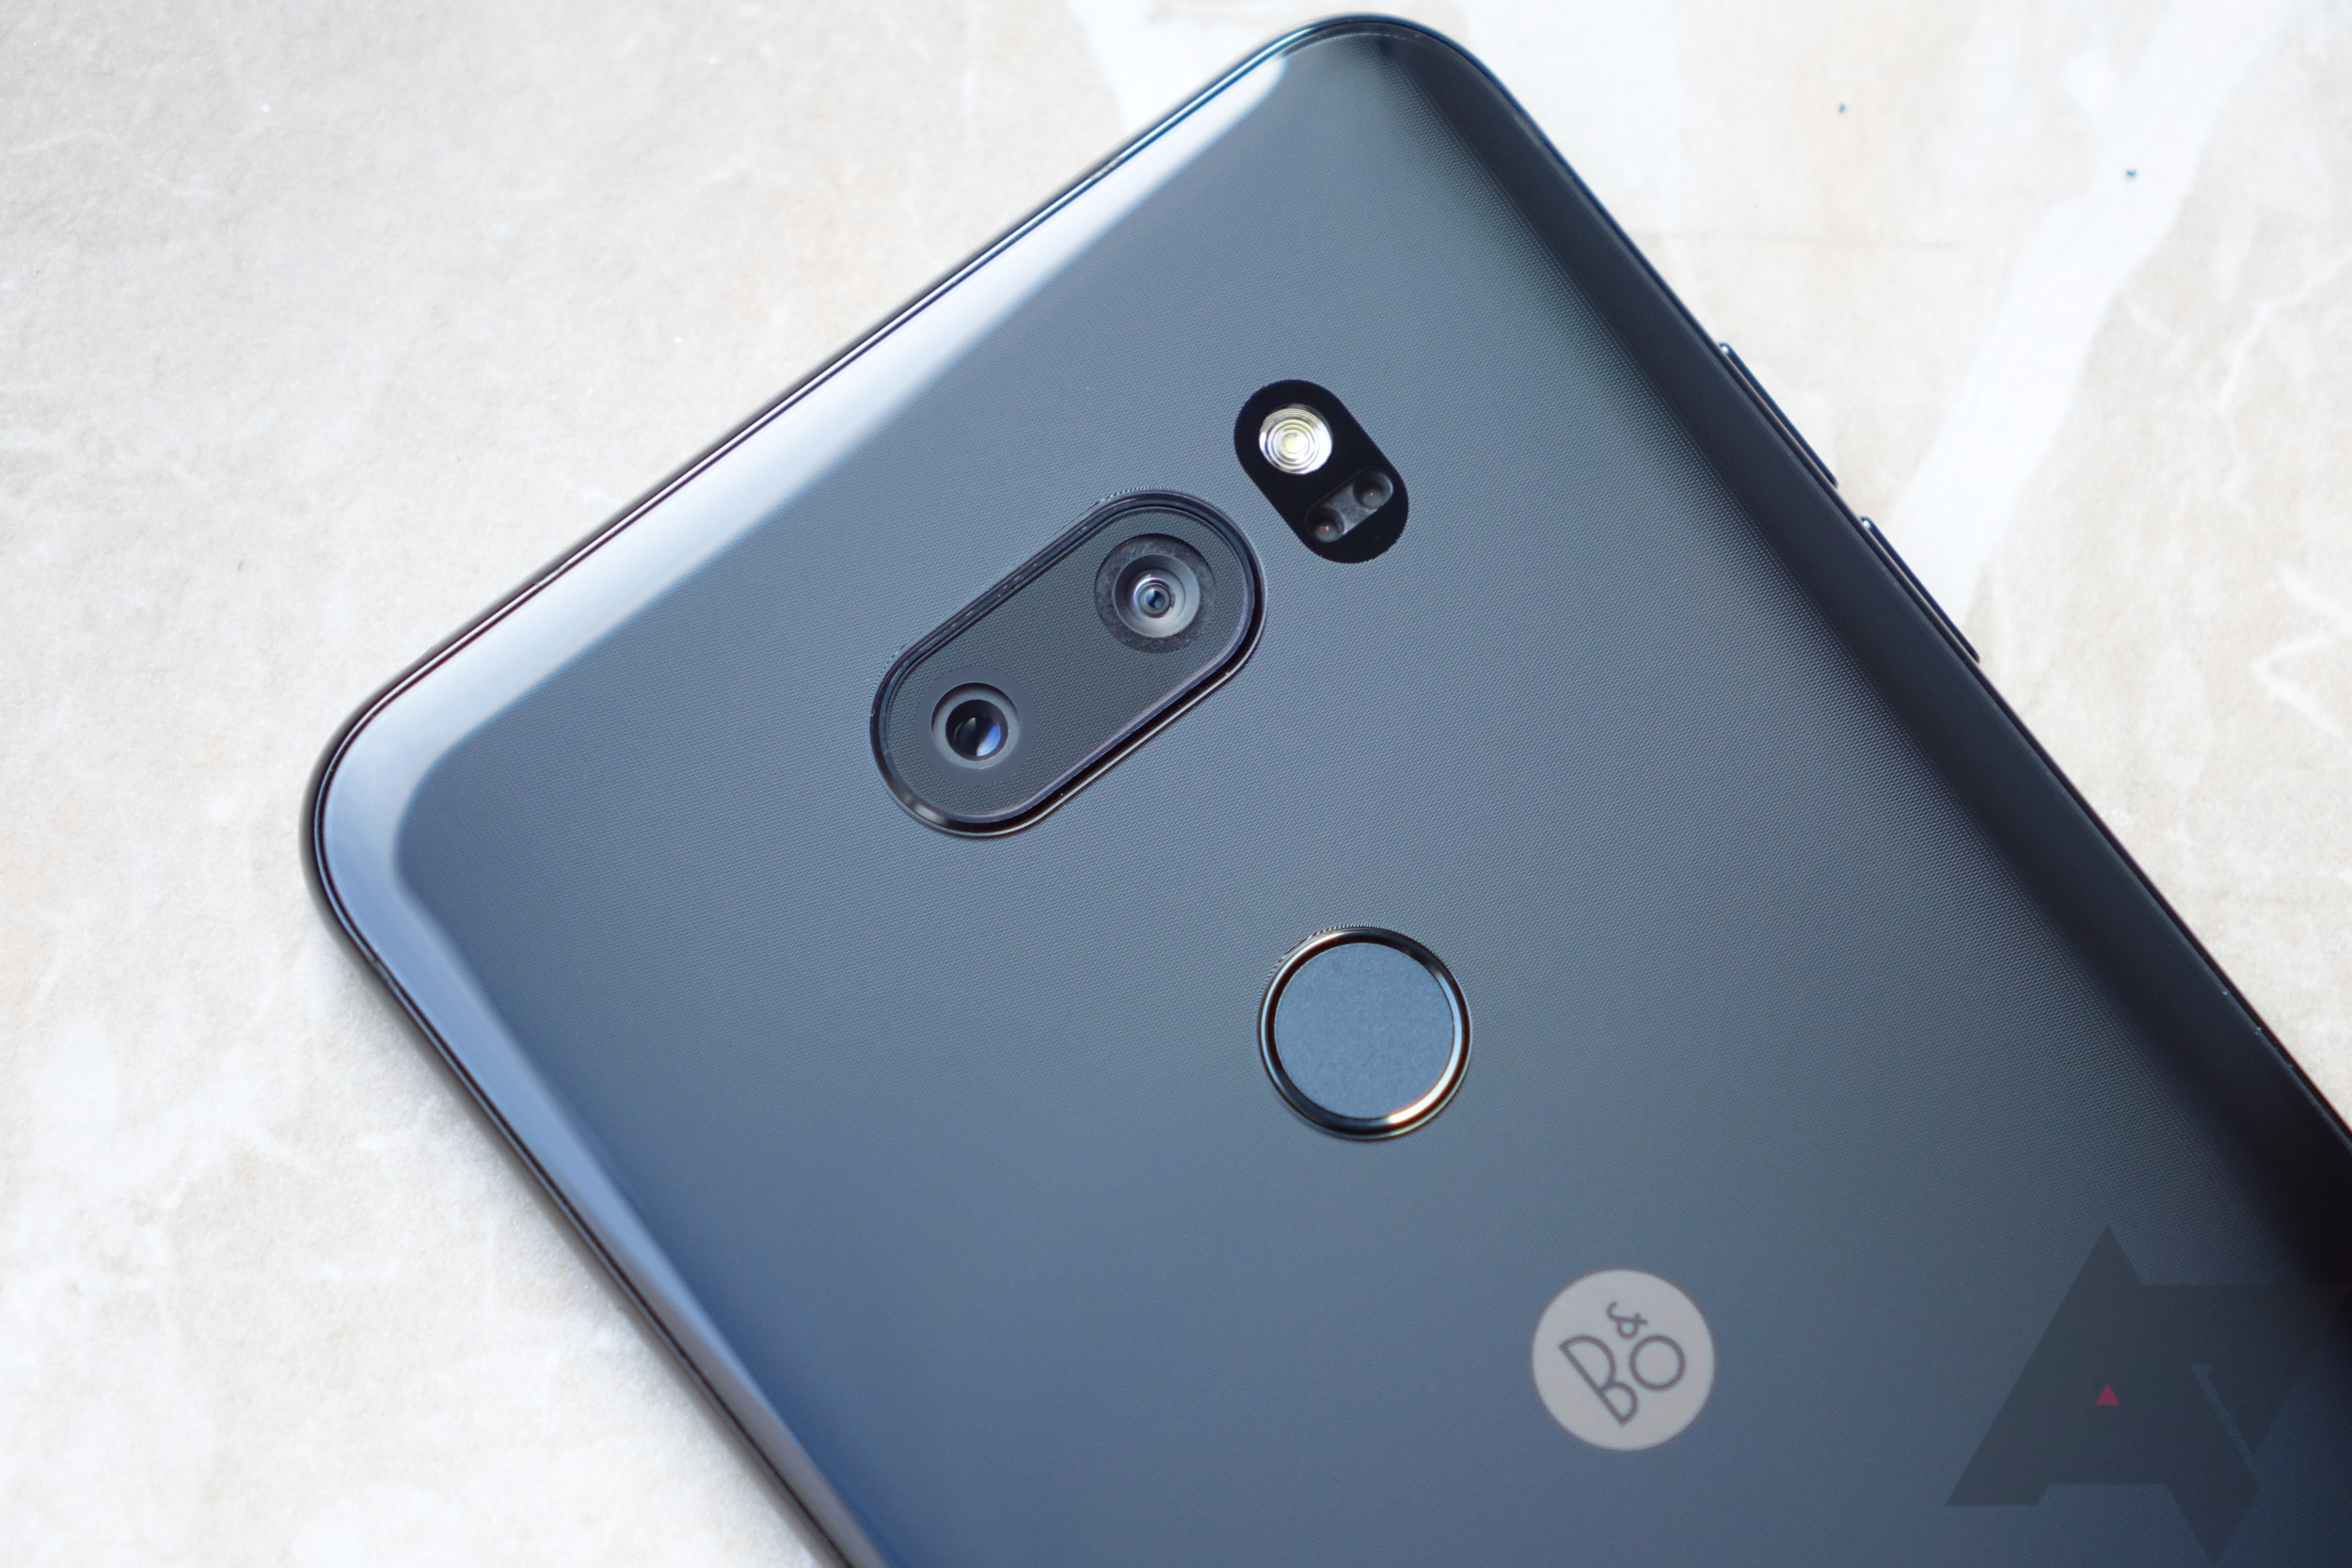 Update: Promo is live] LG V30 will launch in the US soon